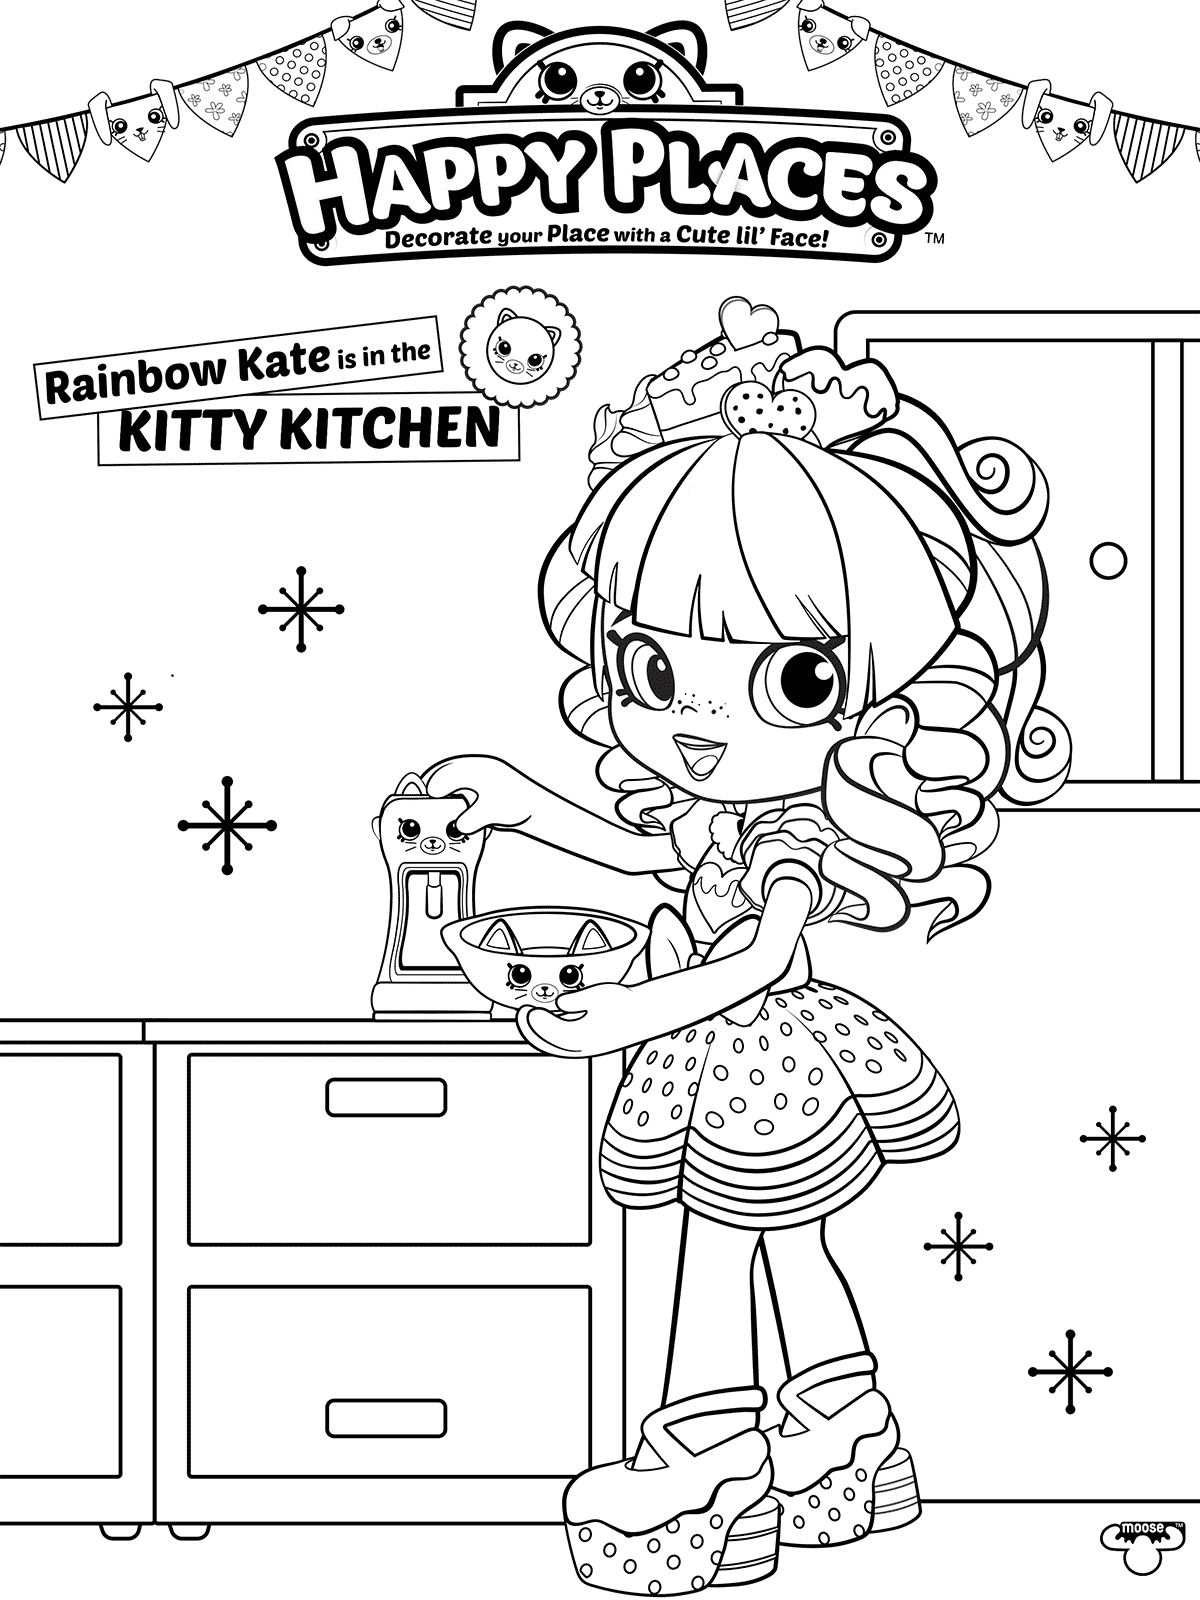 Kids-n-fun.com | 53 coloring pages of Shopkins